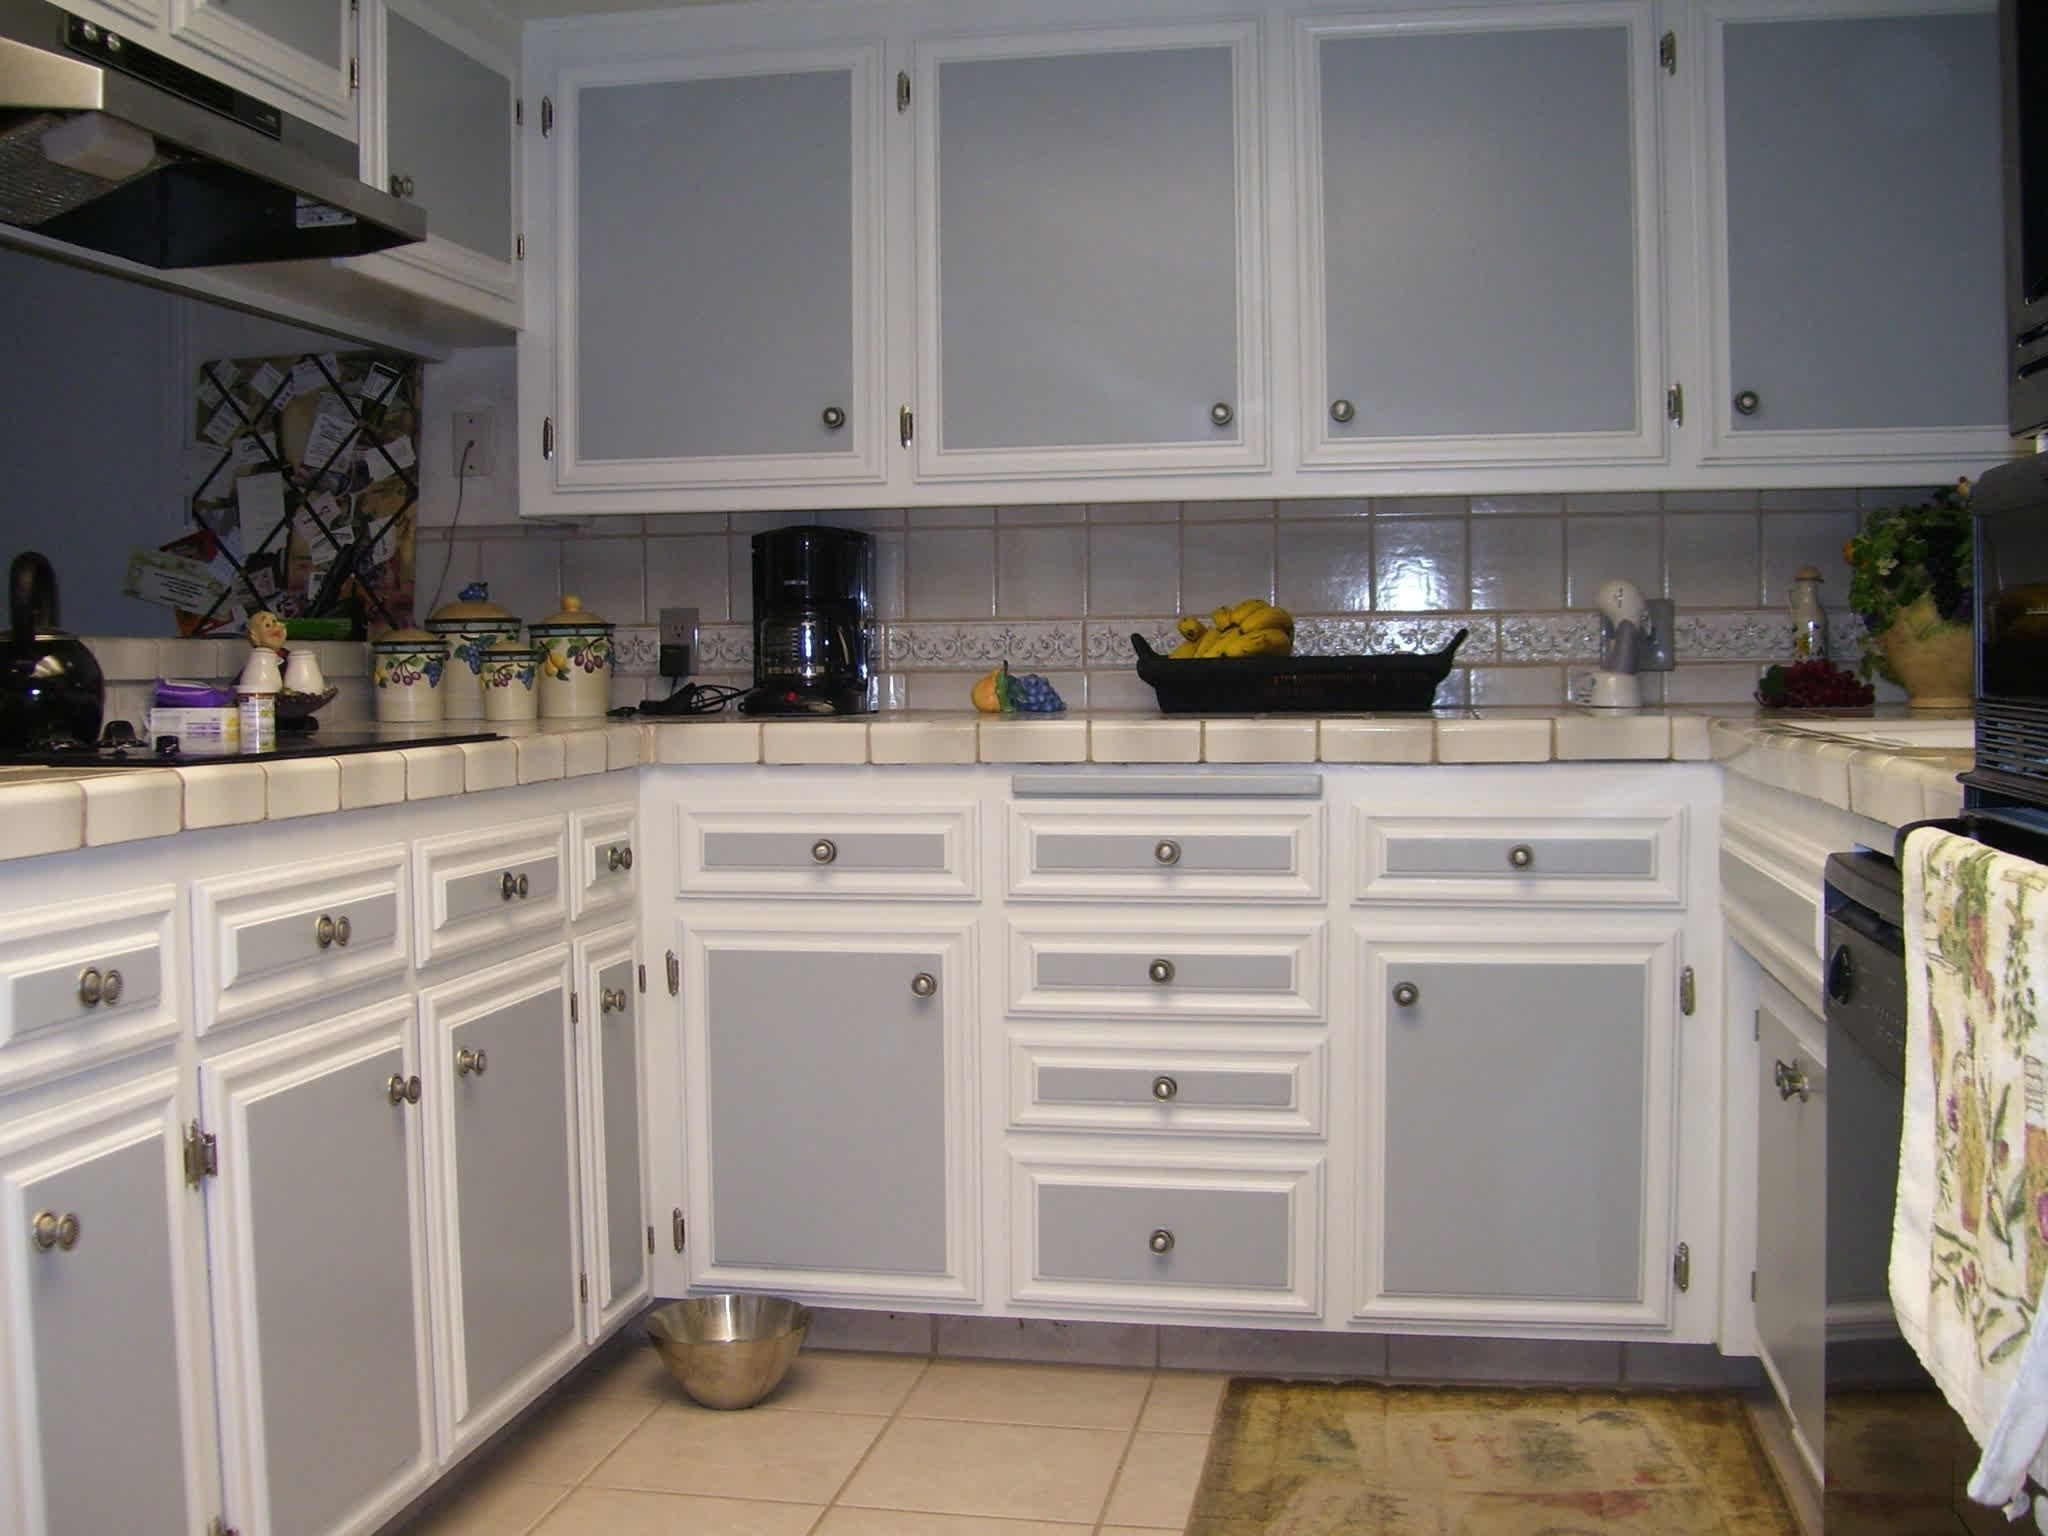 Home Depot Kitchen Cabinets Ideas Kitchendesigns Kitchencabinets Pine Kitchen Ca Kitchen Cabinet Trends Kitchen Cabinets For Sale Two Tone Kitchen Cabinets